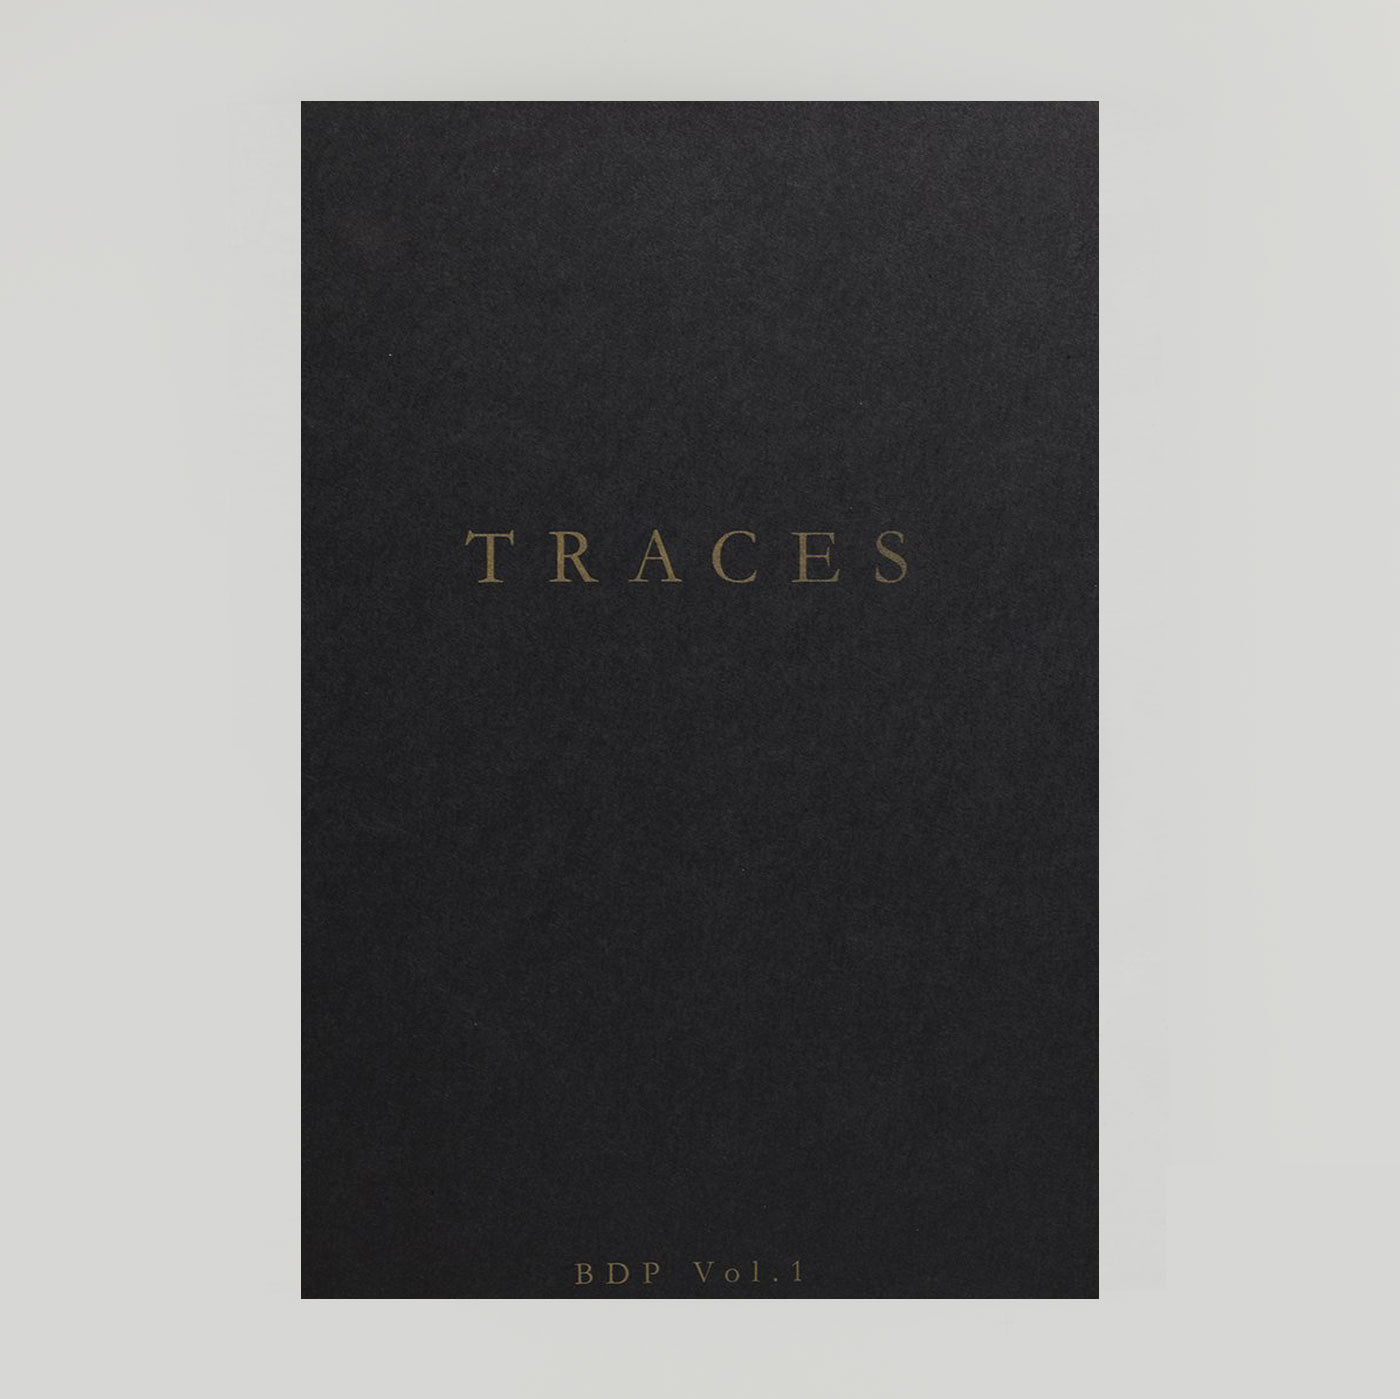 Traces - BDP Vol 1 - Black Dragon Press - Colours May Vary